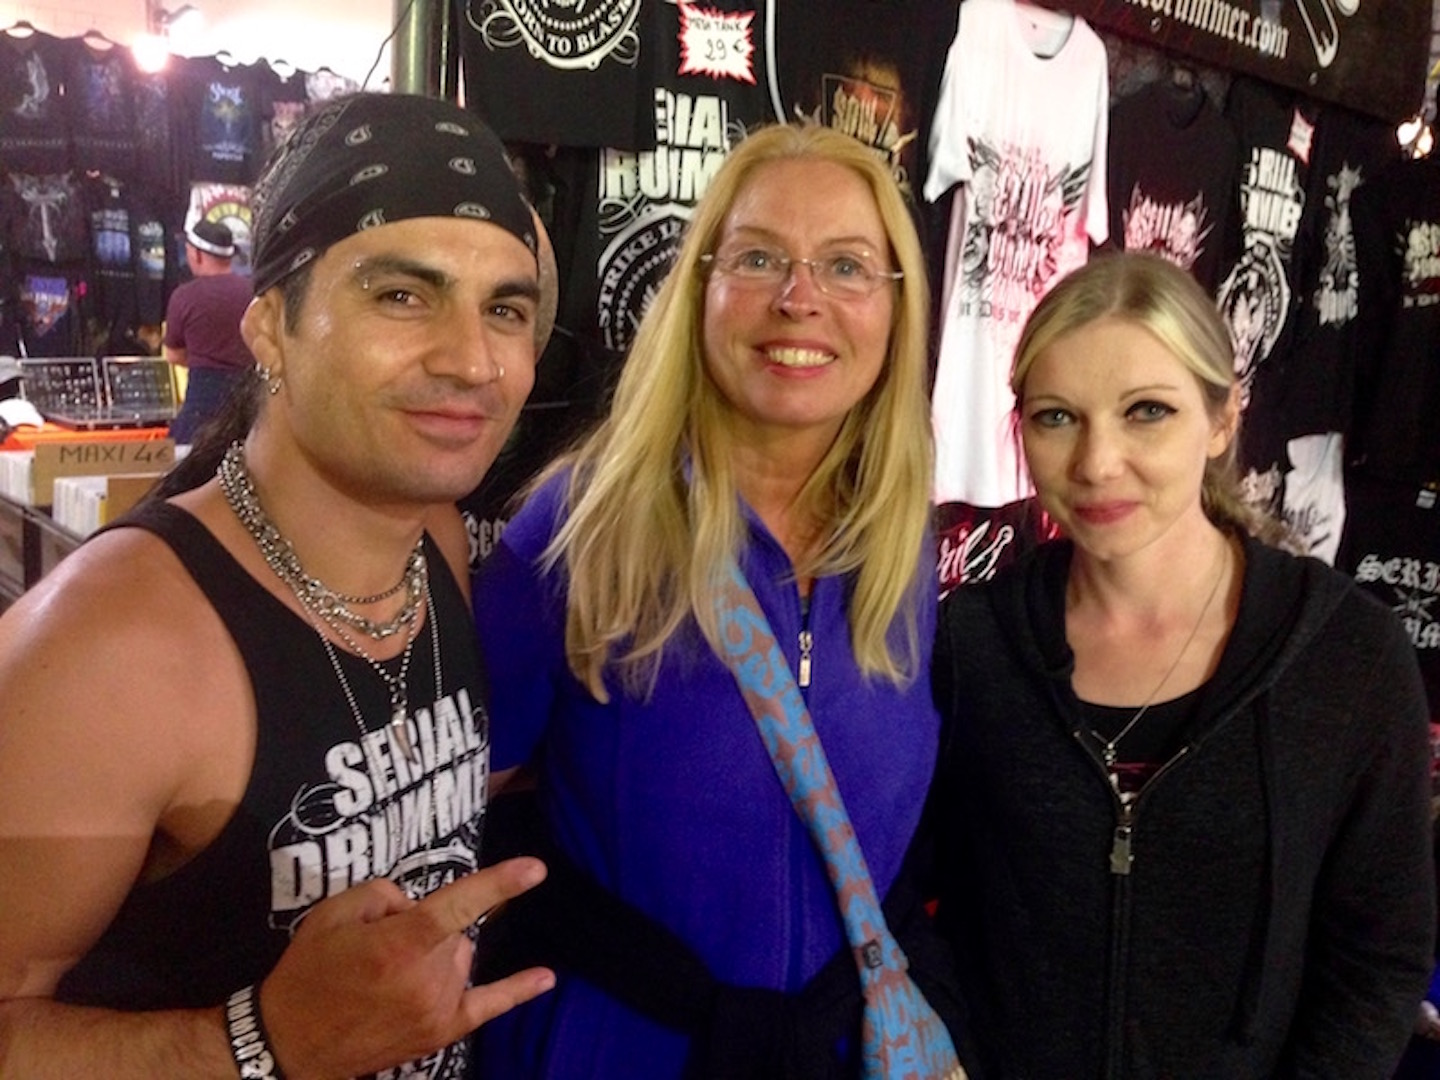 Reina with Franky Constaza (Blazing War Machine, Tambours du Bronx, ex-Dagoba) and his wife, Hellfest 2018